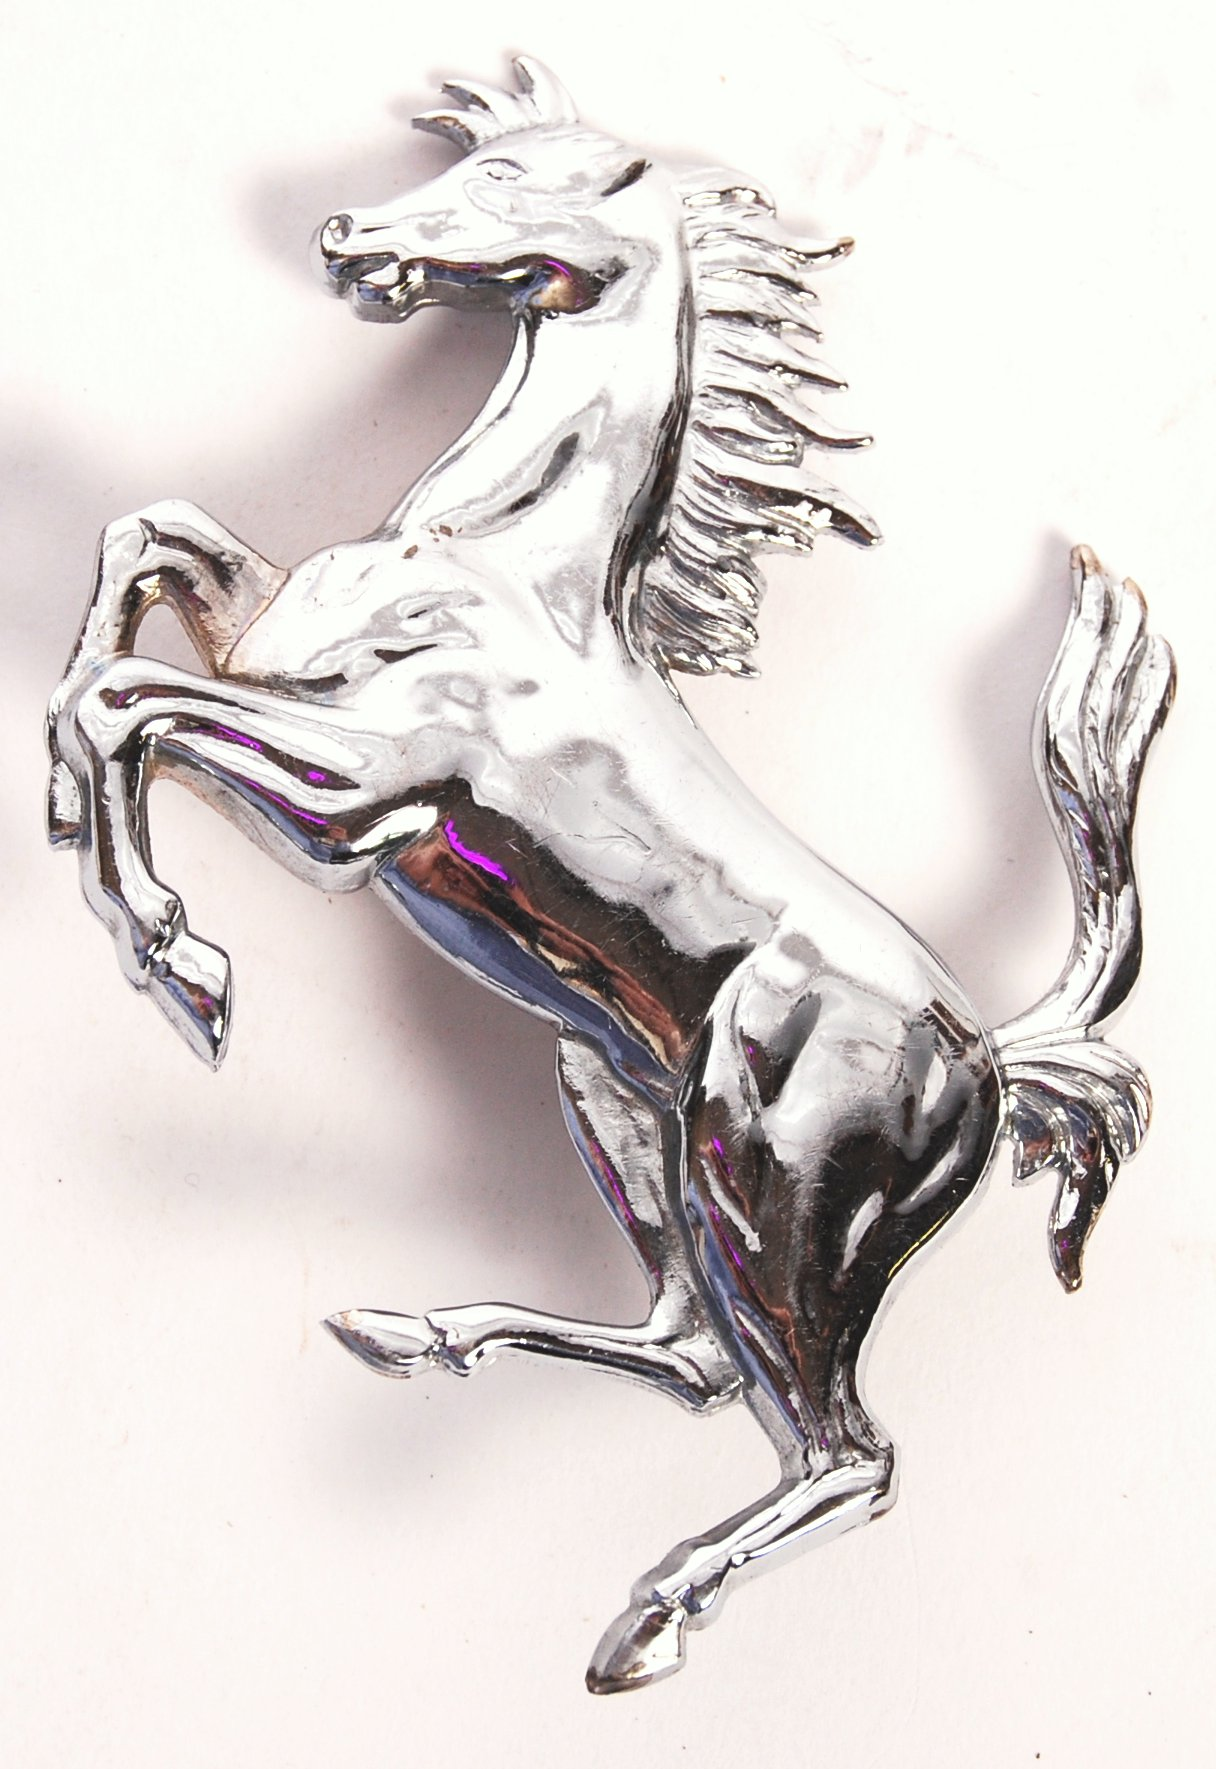 RARE PRANCING HORSE FERRARI SPORTS CAR MASCOT / BADGE - Image 2 of 3